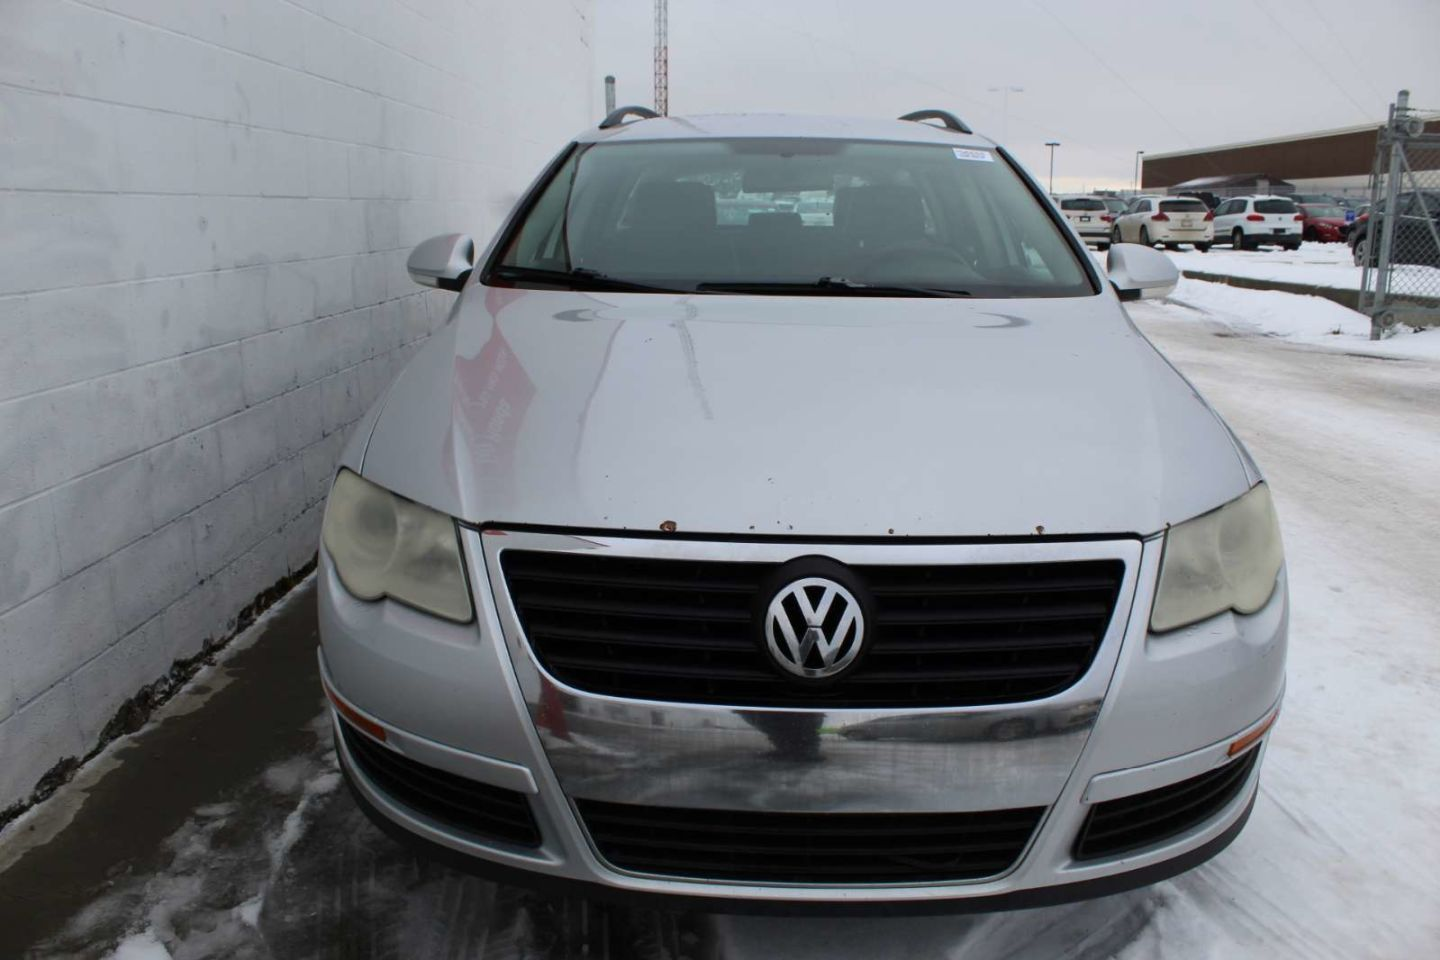 2007 Volkswagen Passat Wagon 2.0T for sale in Edmonton, Alberta